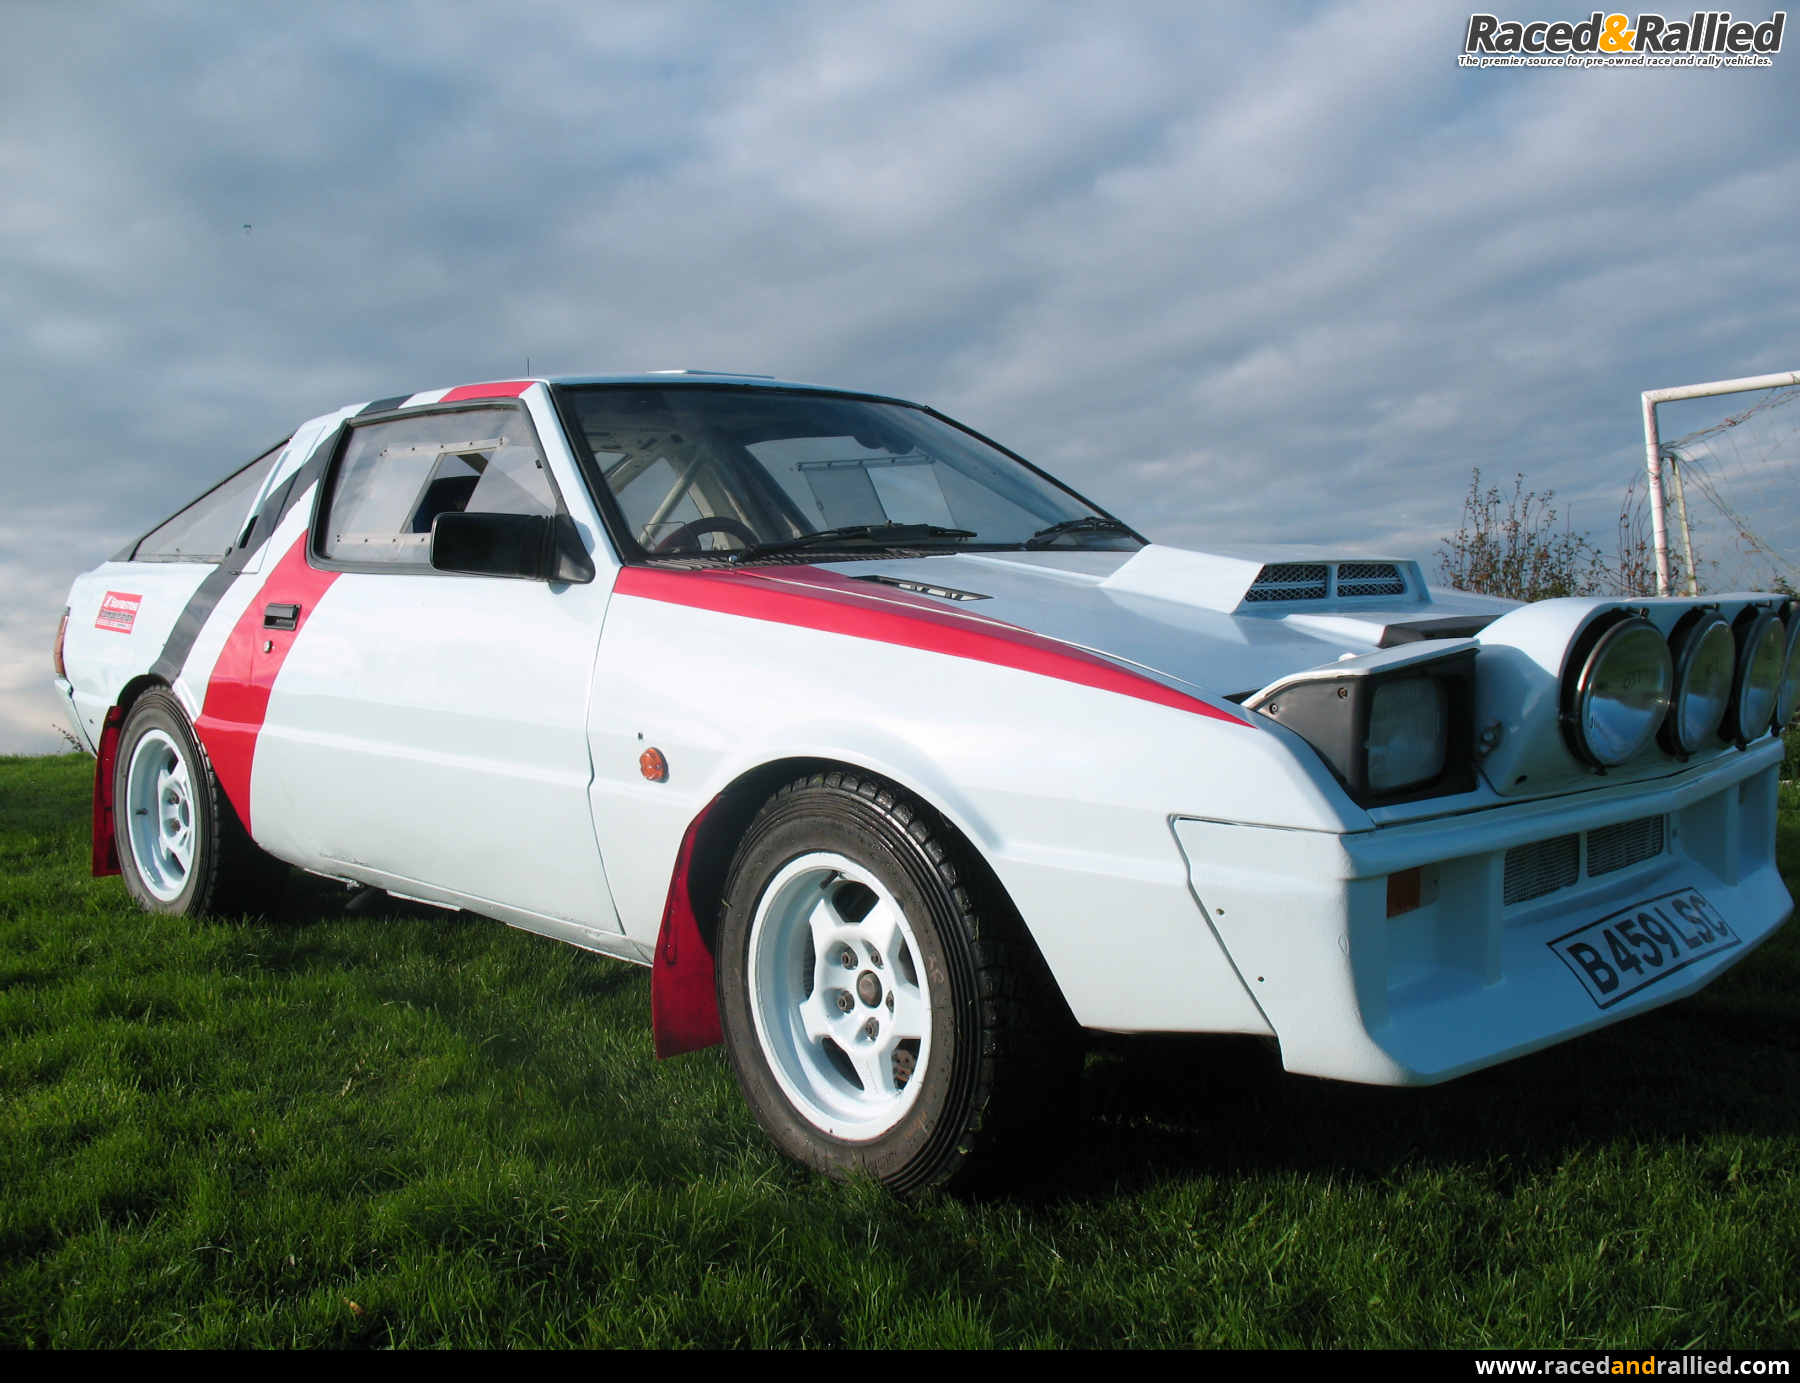 Rac Cars For Sale >> Mitsubishi Starion RALLIART Works spec Rally Car | Rally Cars for sale at Raced & Rallied ...